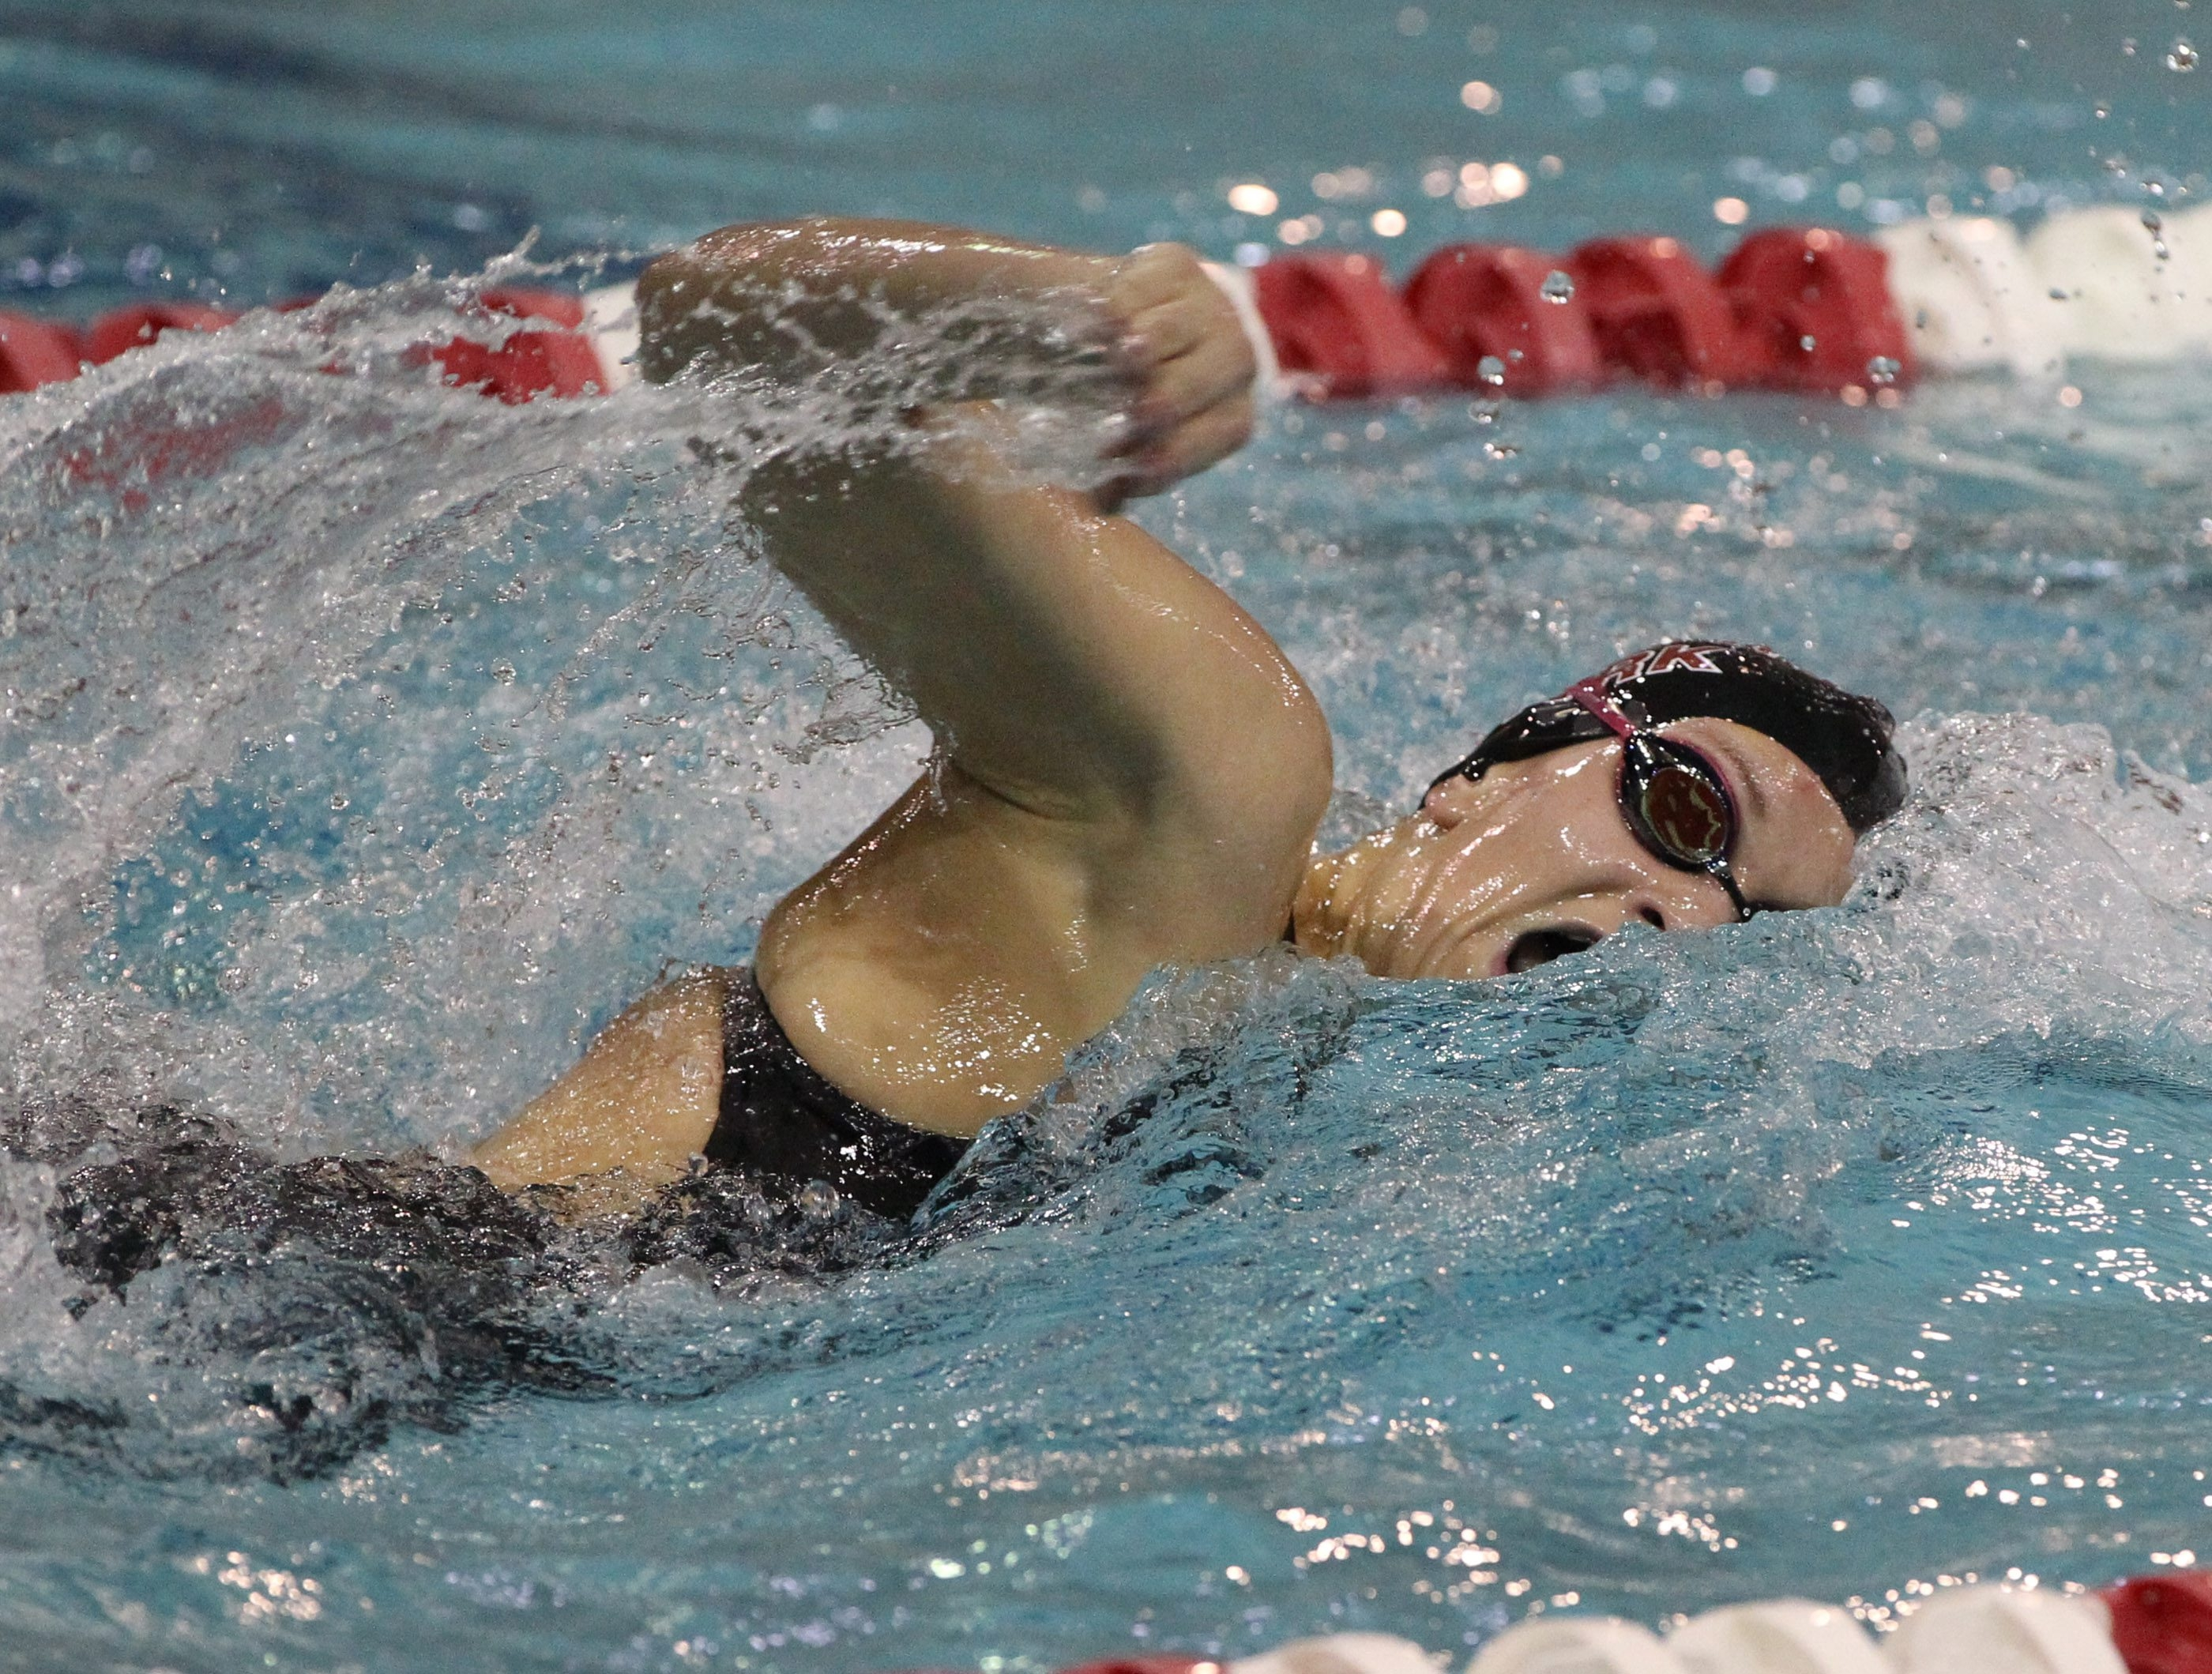 Andrea Ernst of Orchard Park was a double winner, taking sectional titles in the 200 free and 100 butterfly.